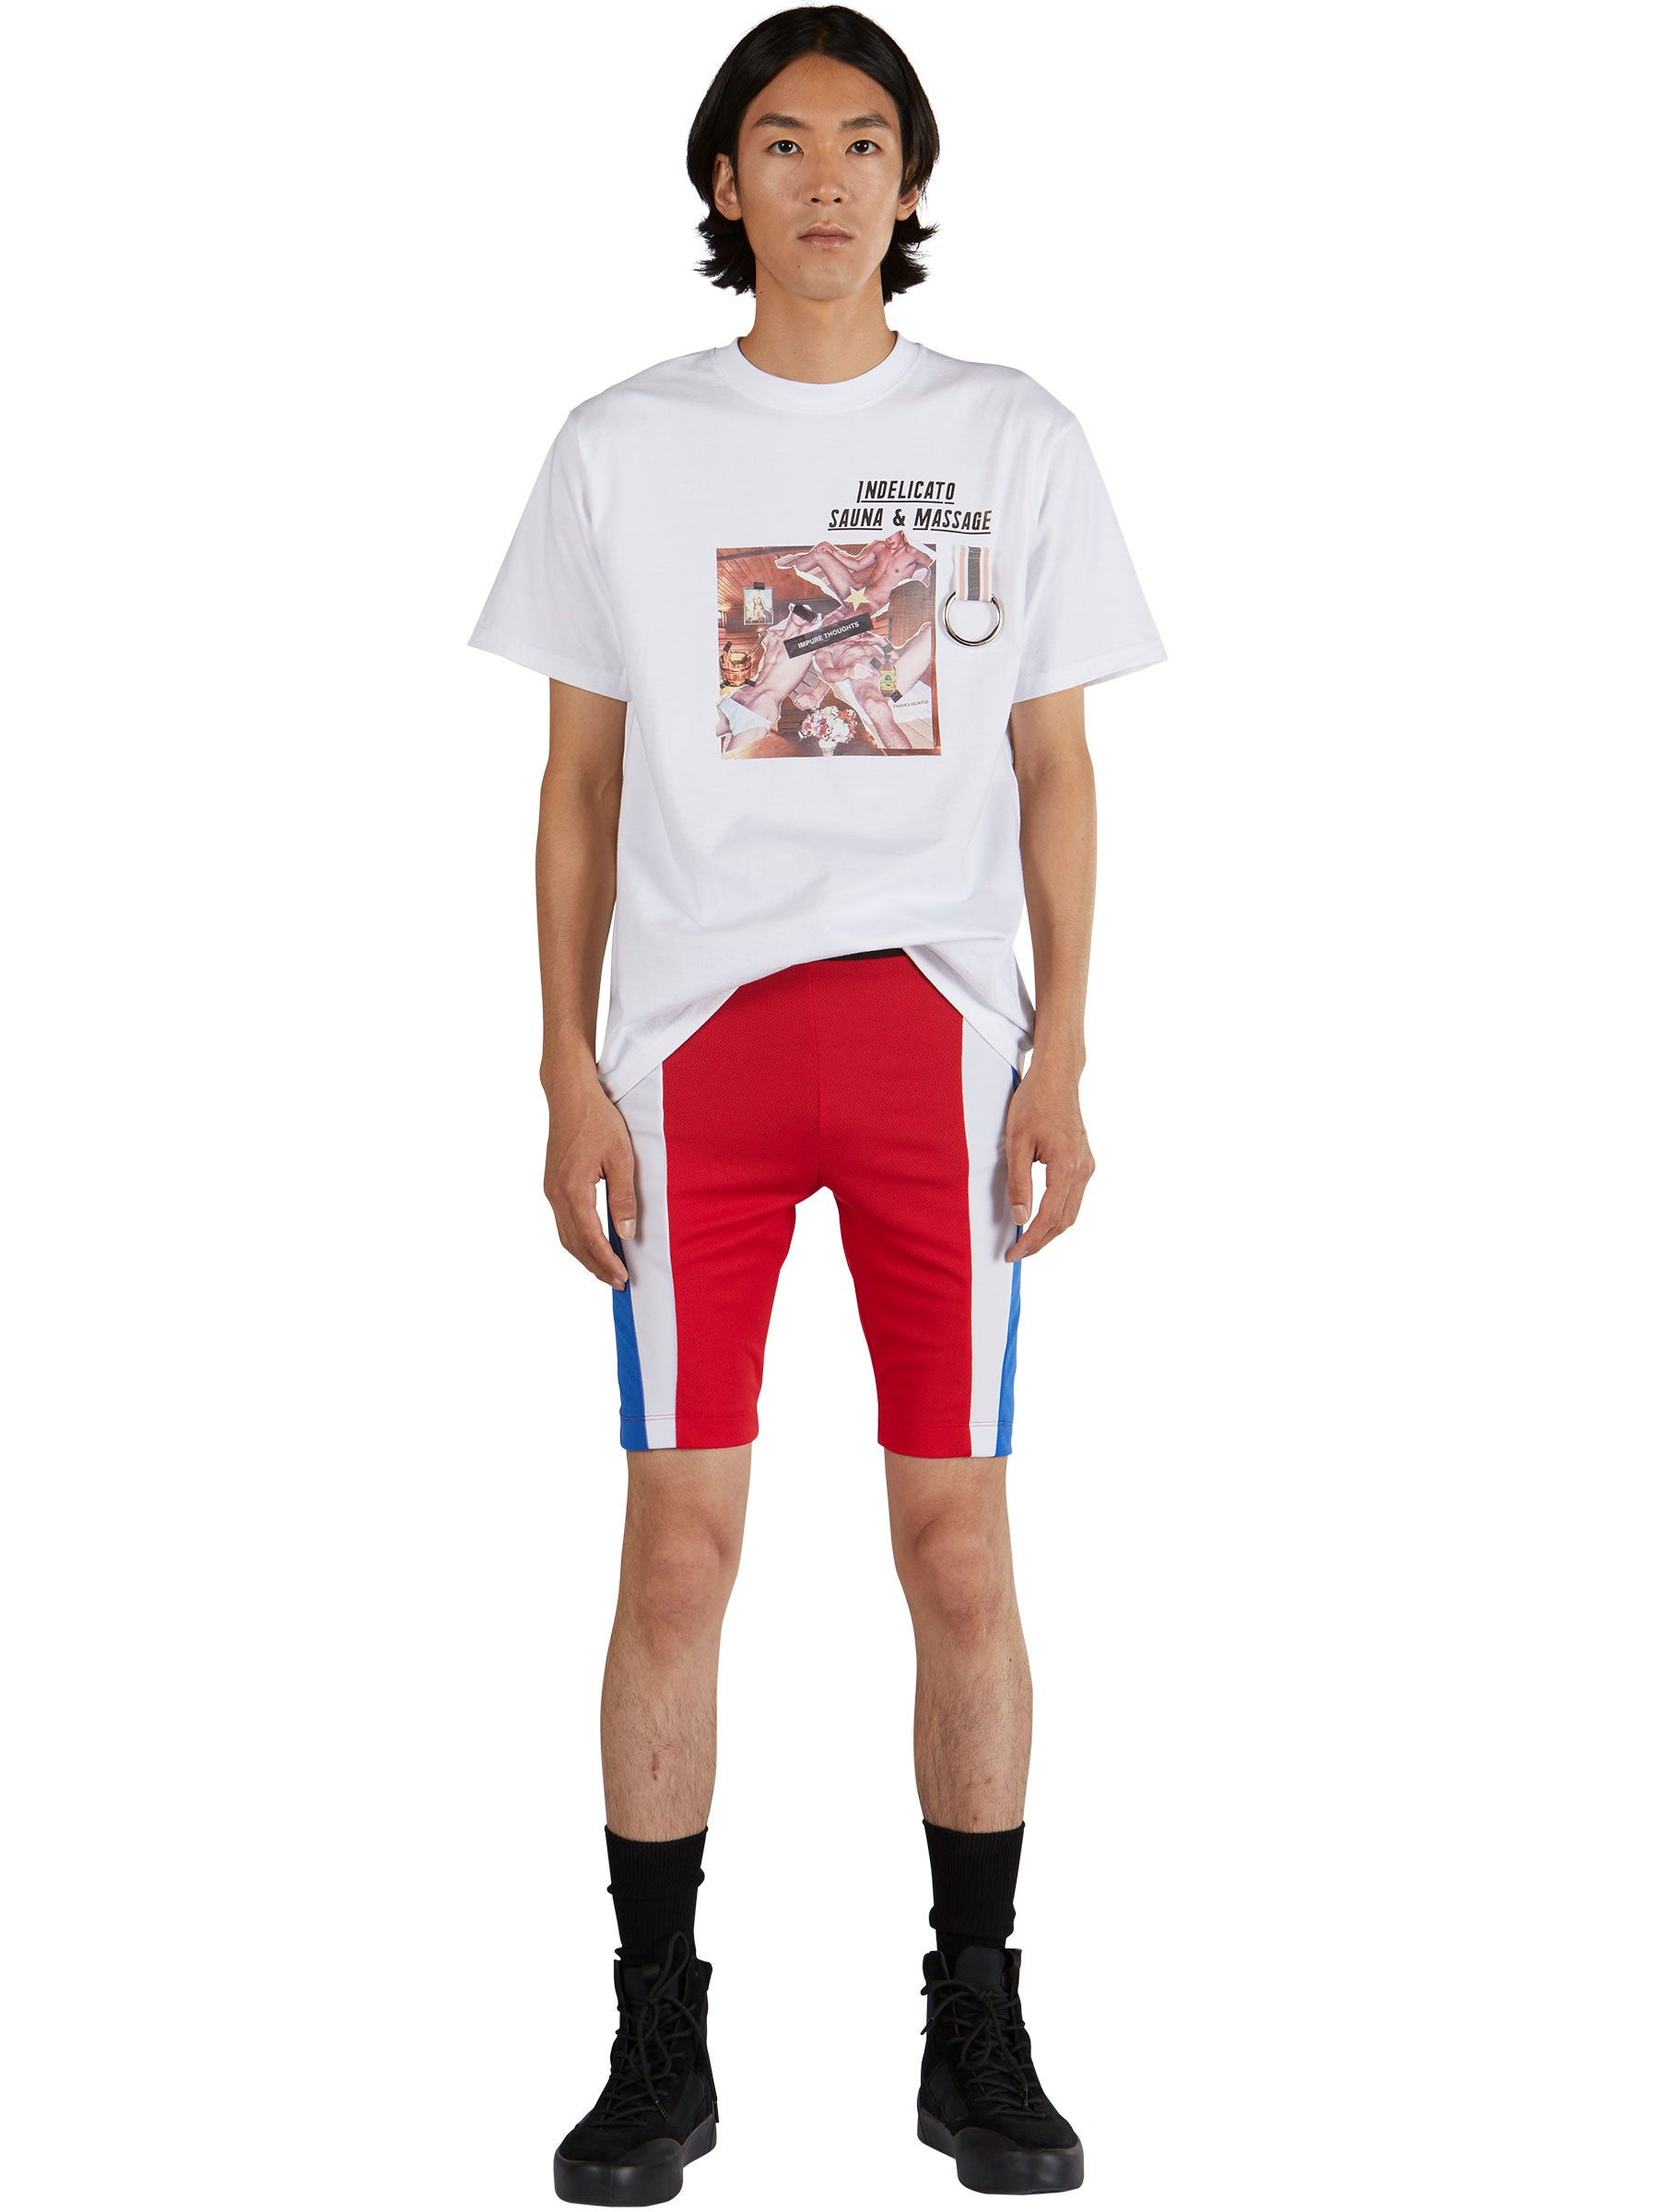 odd92 Nicola Indelicato Cycling Shorts Fall/Winter 2019 Menswear - 2